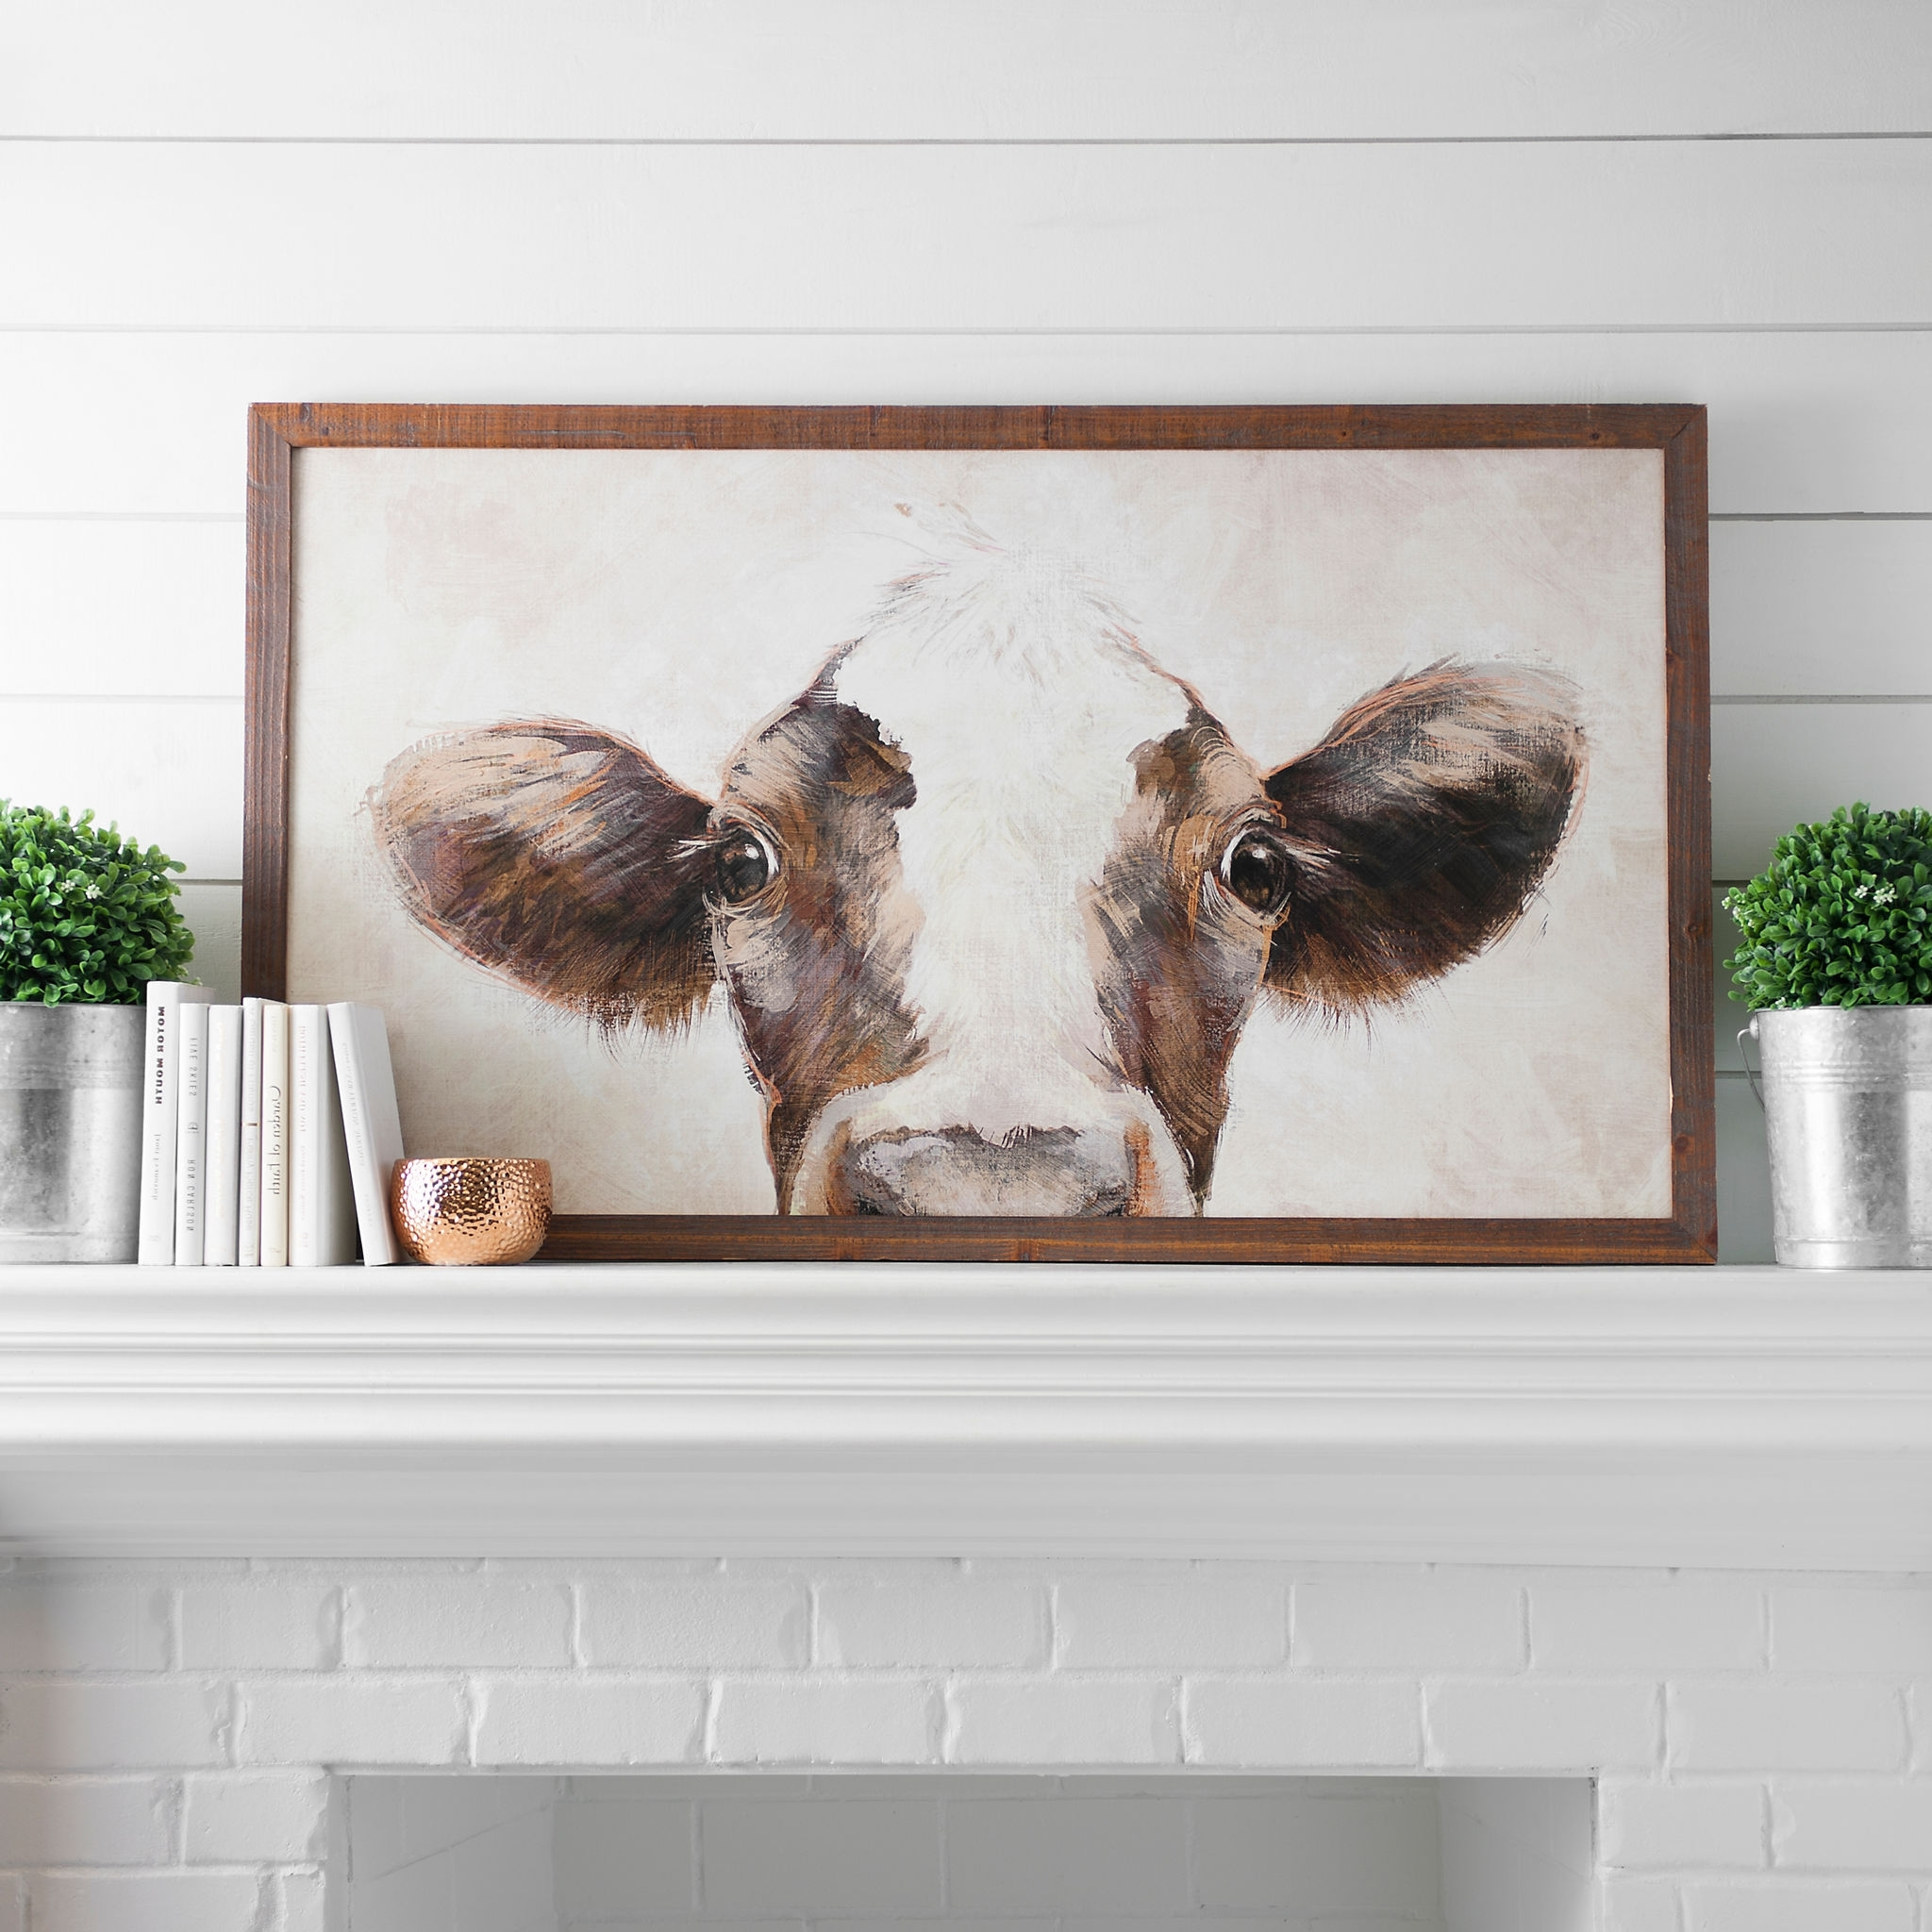 Favorite Chocolate Milk Framed Art Print (View 9 of 15)